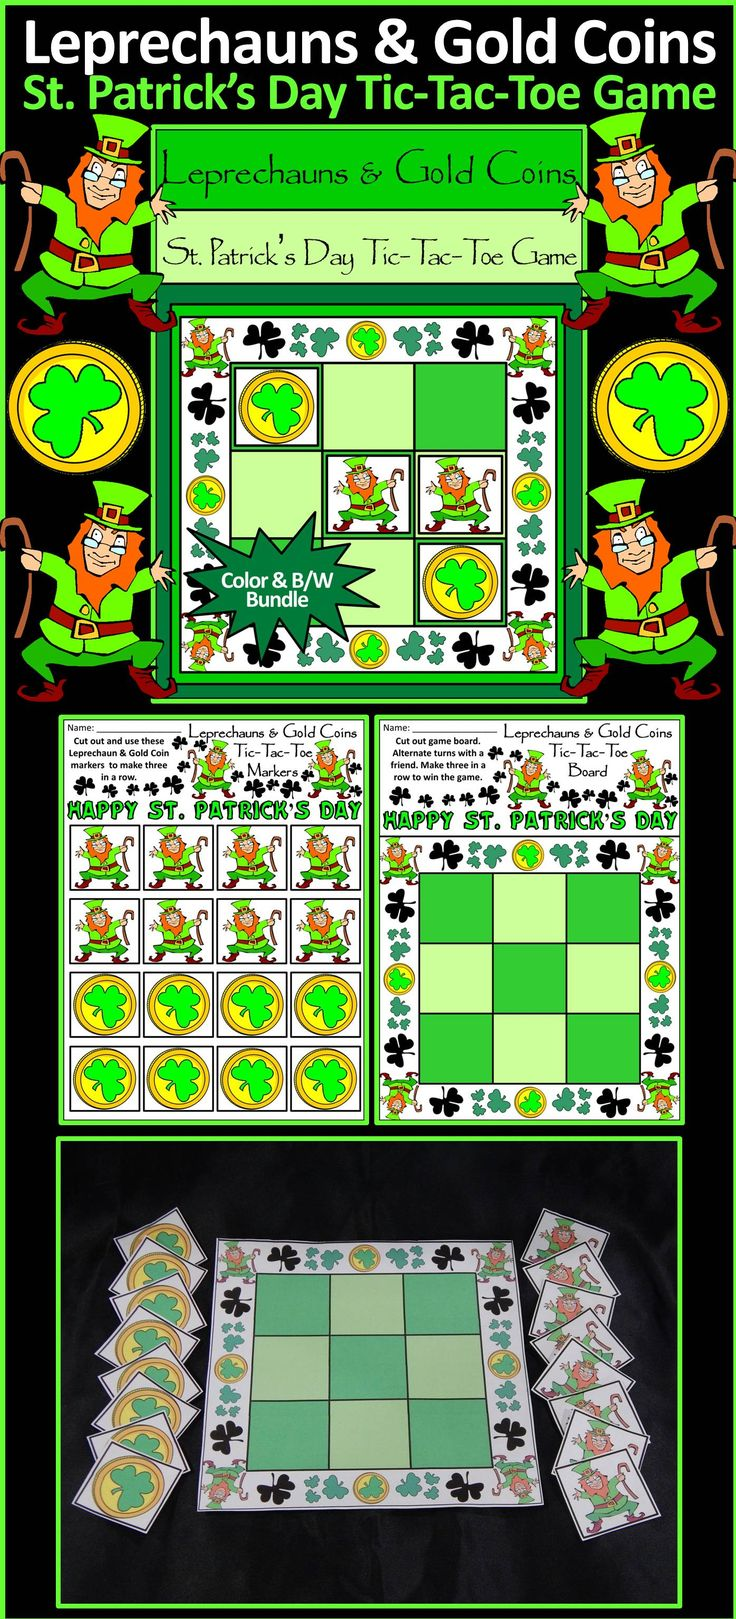 Leprechauns & Gold Coins St. Patrick's Day Tic-Tac-Toe Games: Contains all the necessary components for playing the classic game. All pieces are decorated with Irish Leprechauns & Gold Coins for a rollicking Irish celebration! Great fun as a St. Patrick's Day game or party favor!  #St. #Saint #Patrick's #Day #Games #Party #Activities #Teacherspayteachers